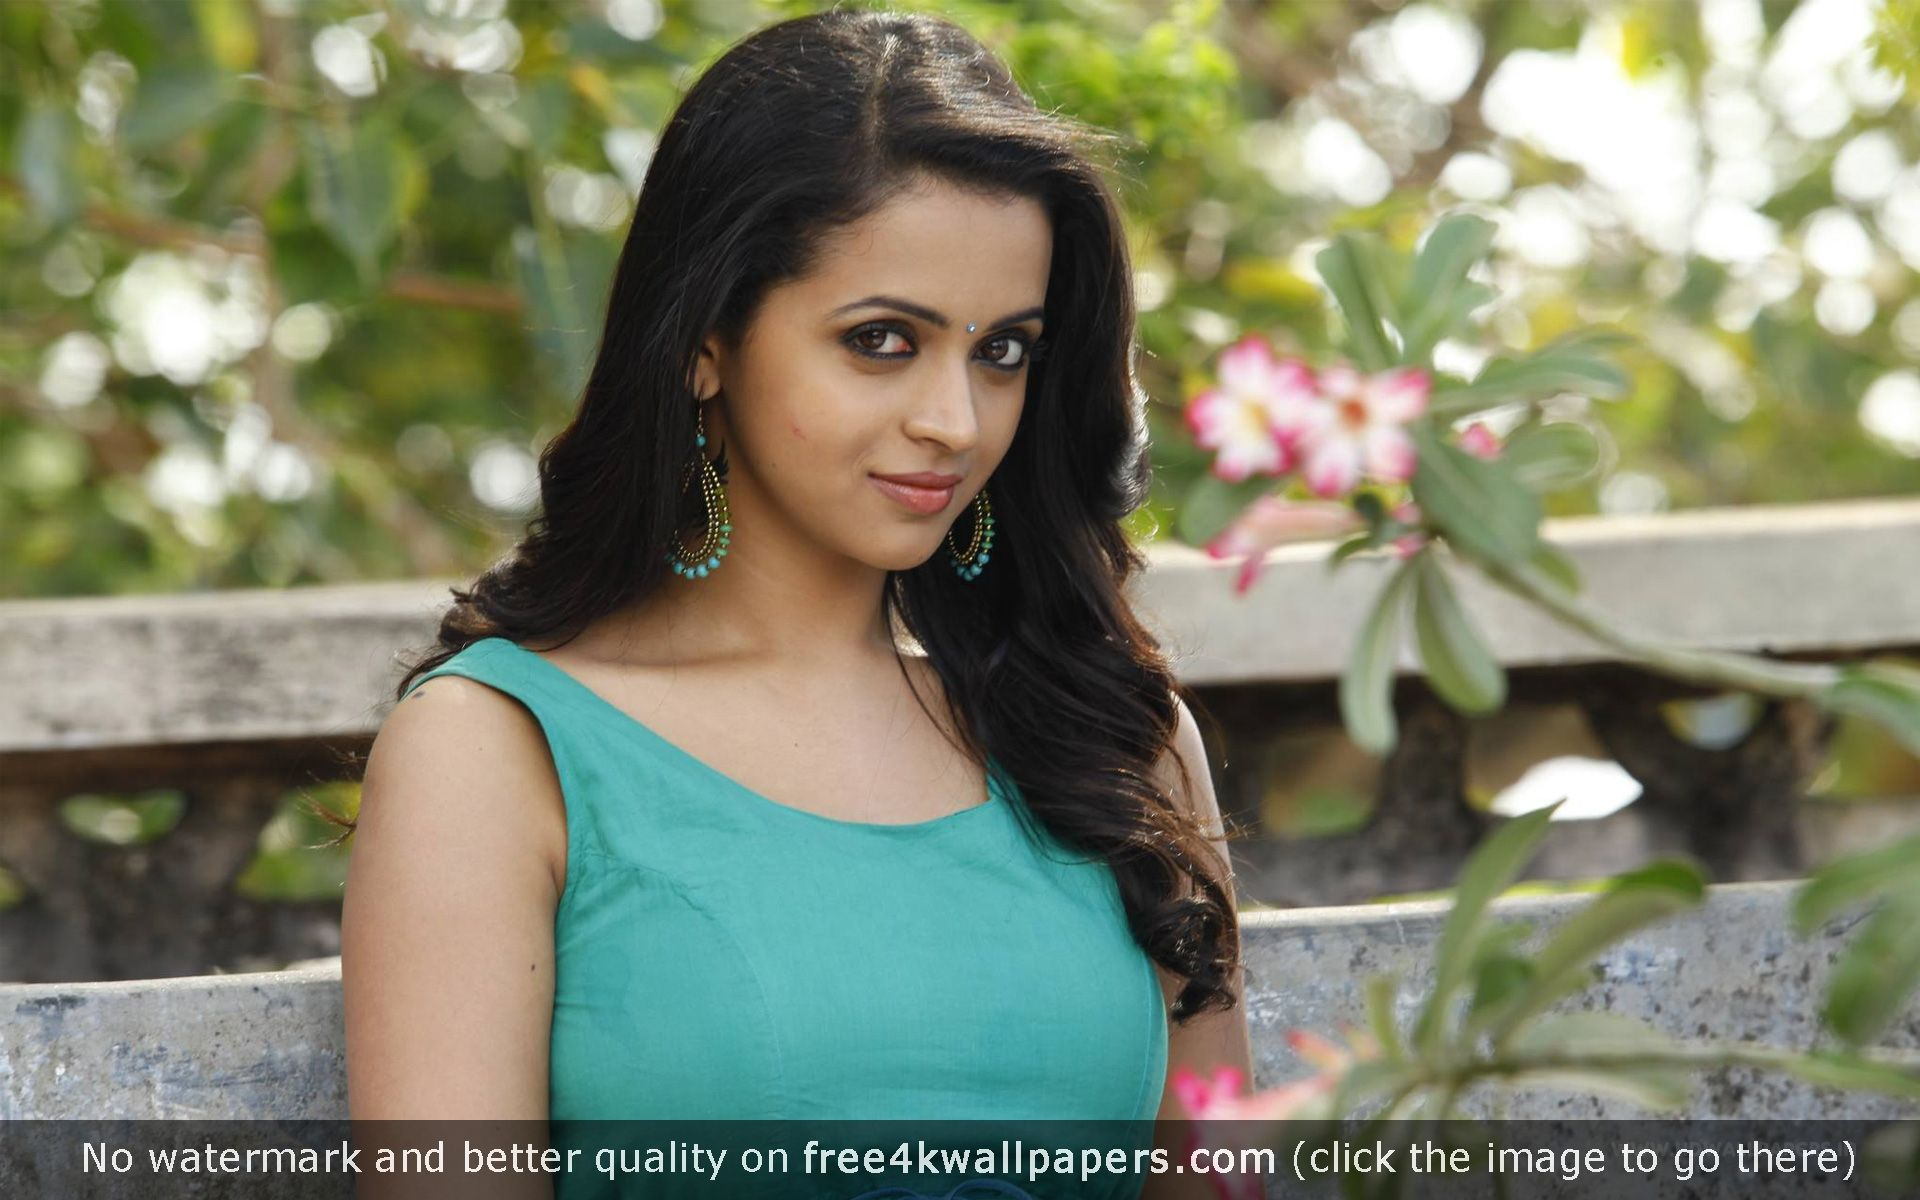 Actress Wallpaper For Mobile 26: Bhavana Tamil Actress 4K Or HD Wallpaper For Your PC, Mac